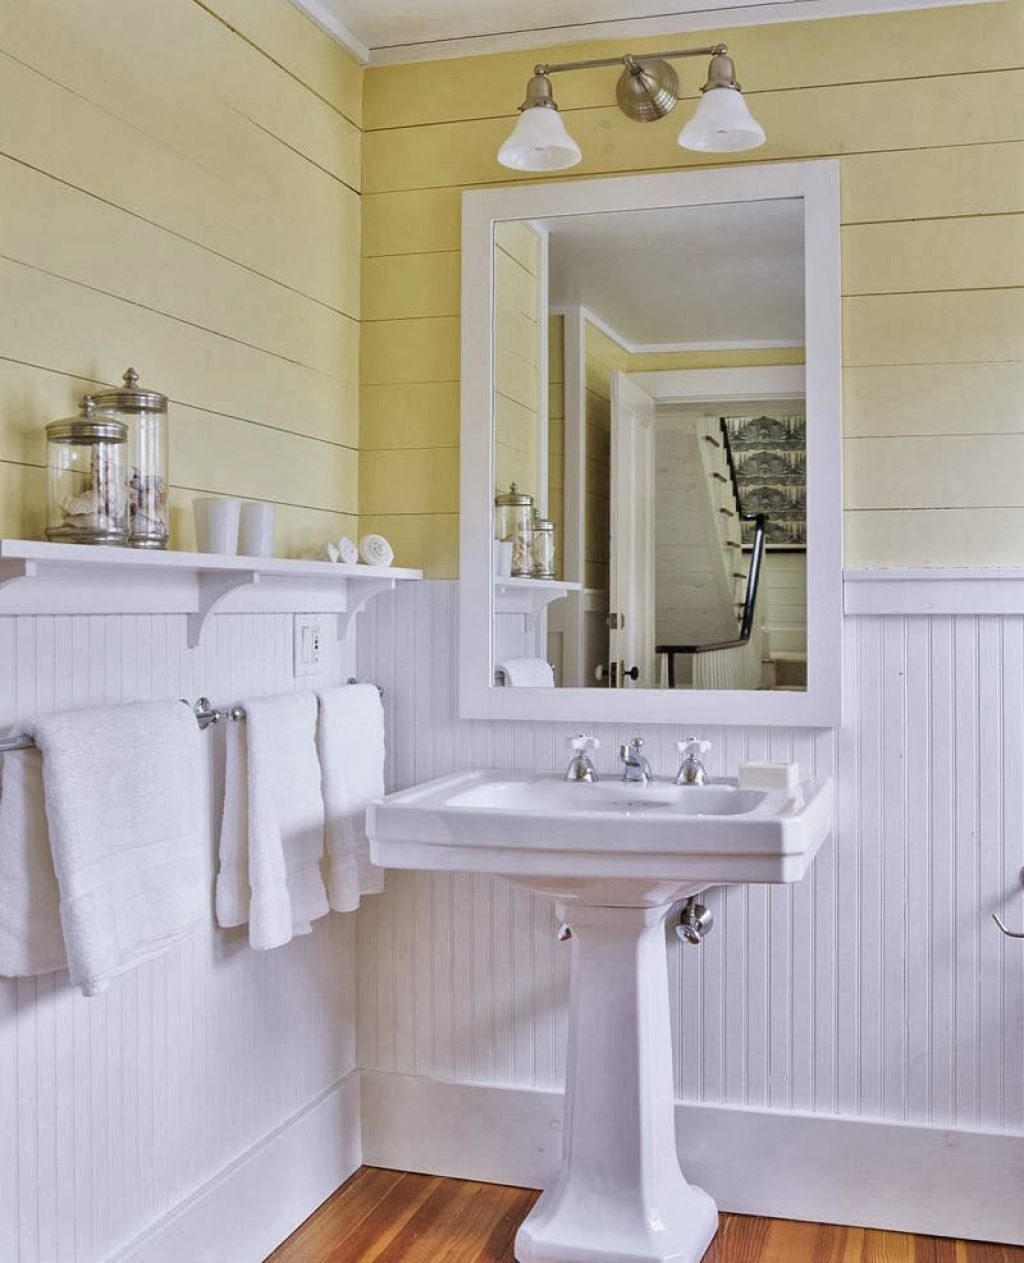 Epic Beadboard Bathroom Wainscoting | Pinterest | Bathroom Wainscotting intended for Bathrooms With Beadboard